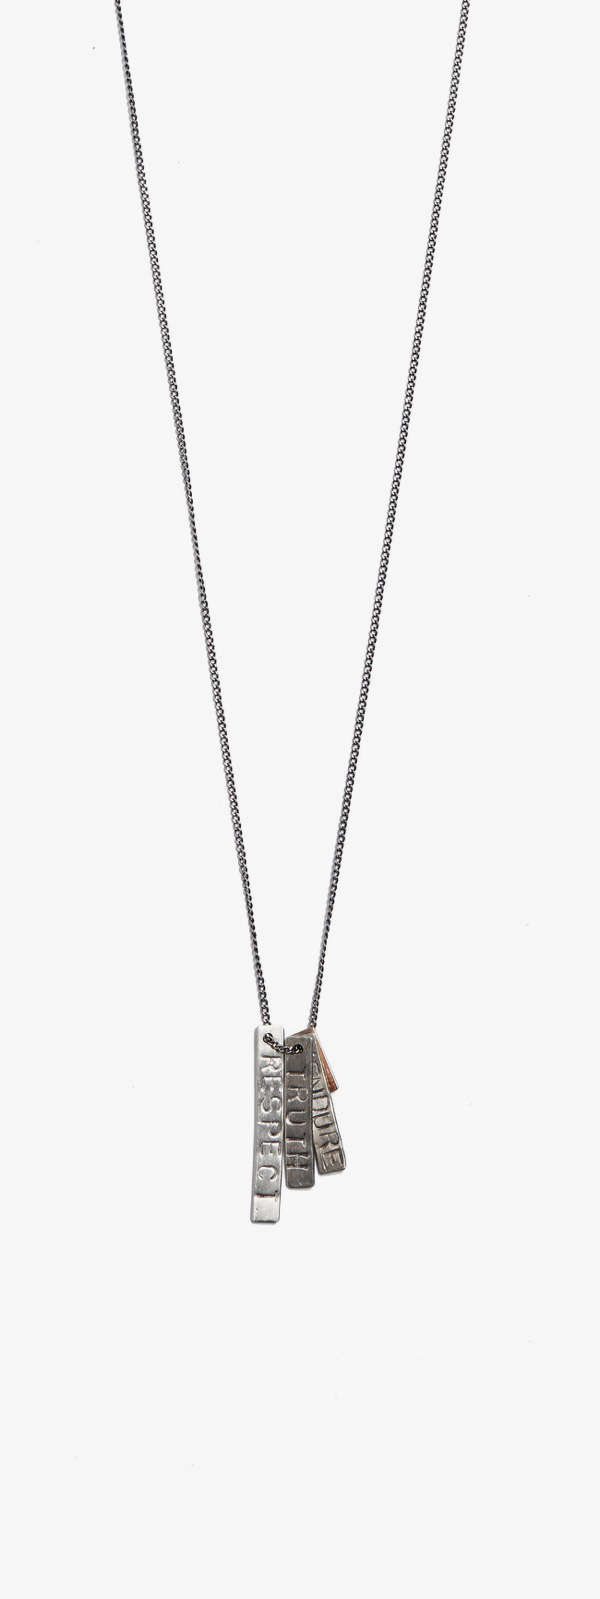 Respect / Truth / Endure / 18kt Rose Gold ID Tags Necklace